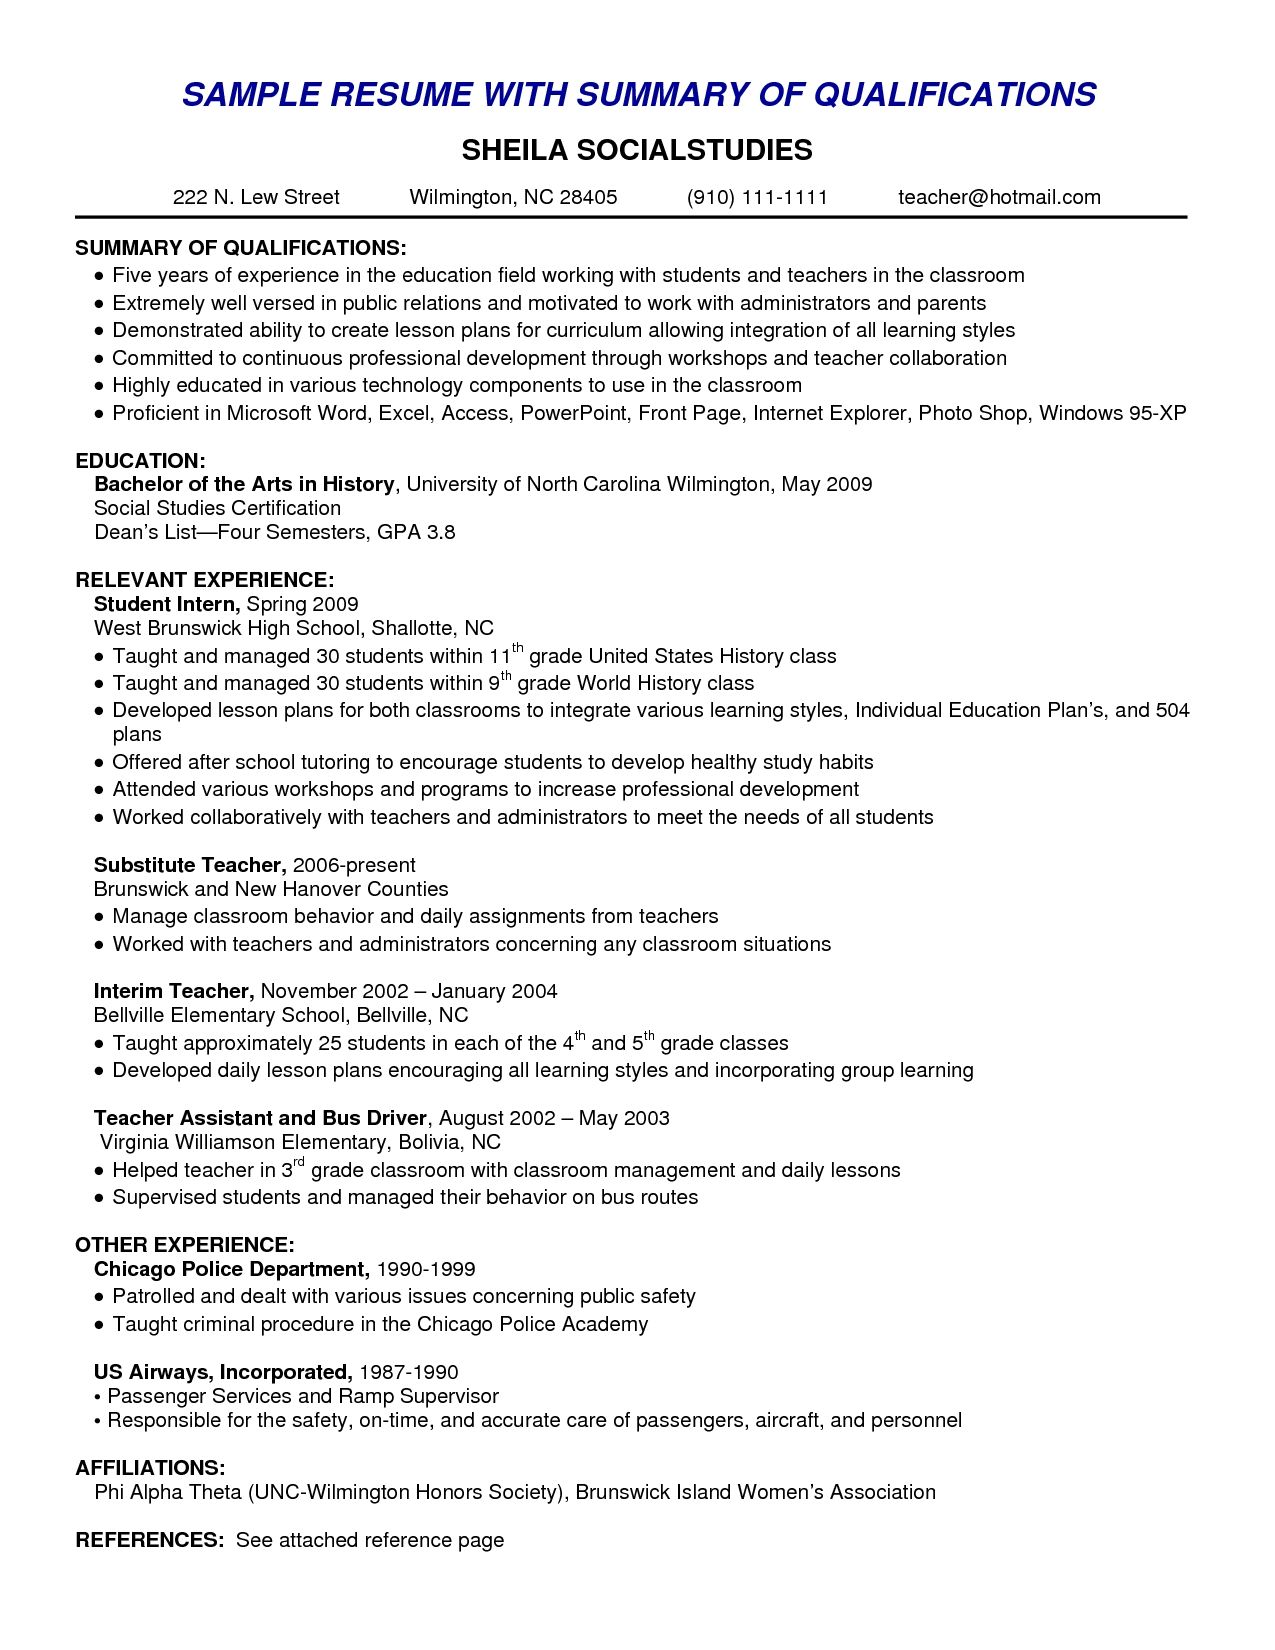 resume summary ideas tikir reitschule pegasus co